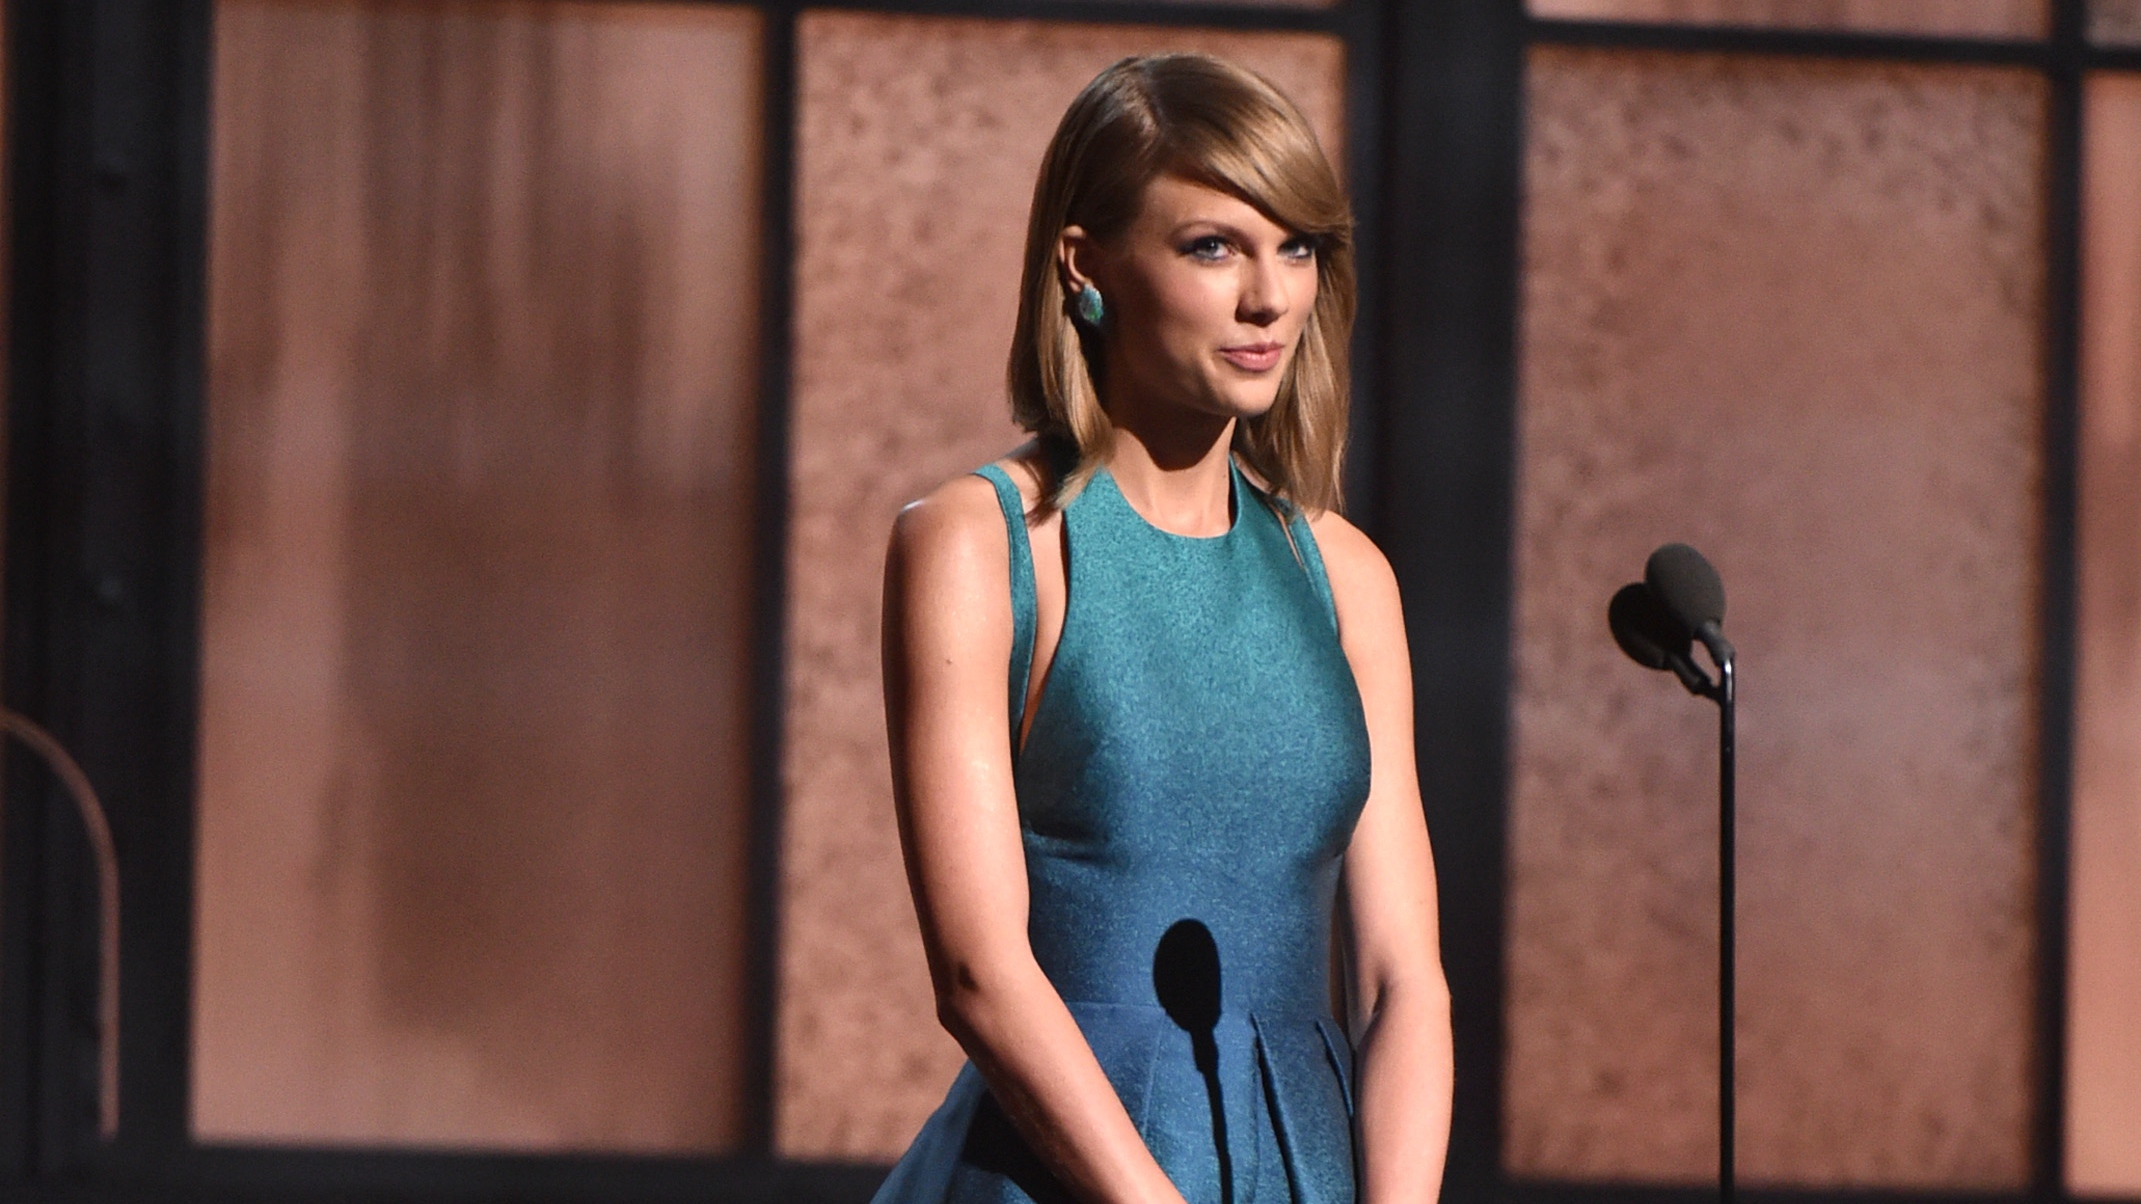 Taylor Swift at the Grammys - H 2015